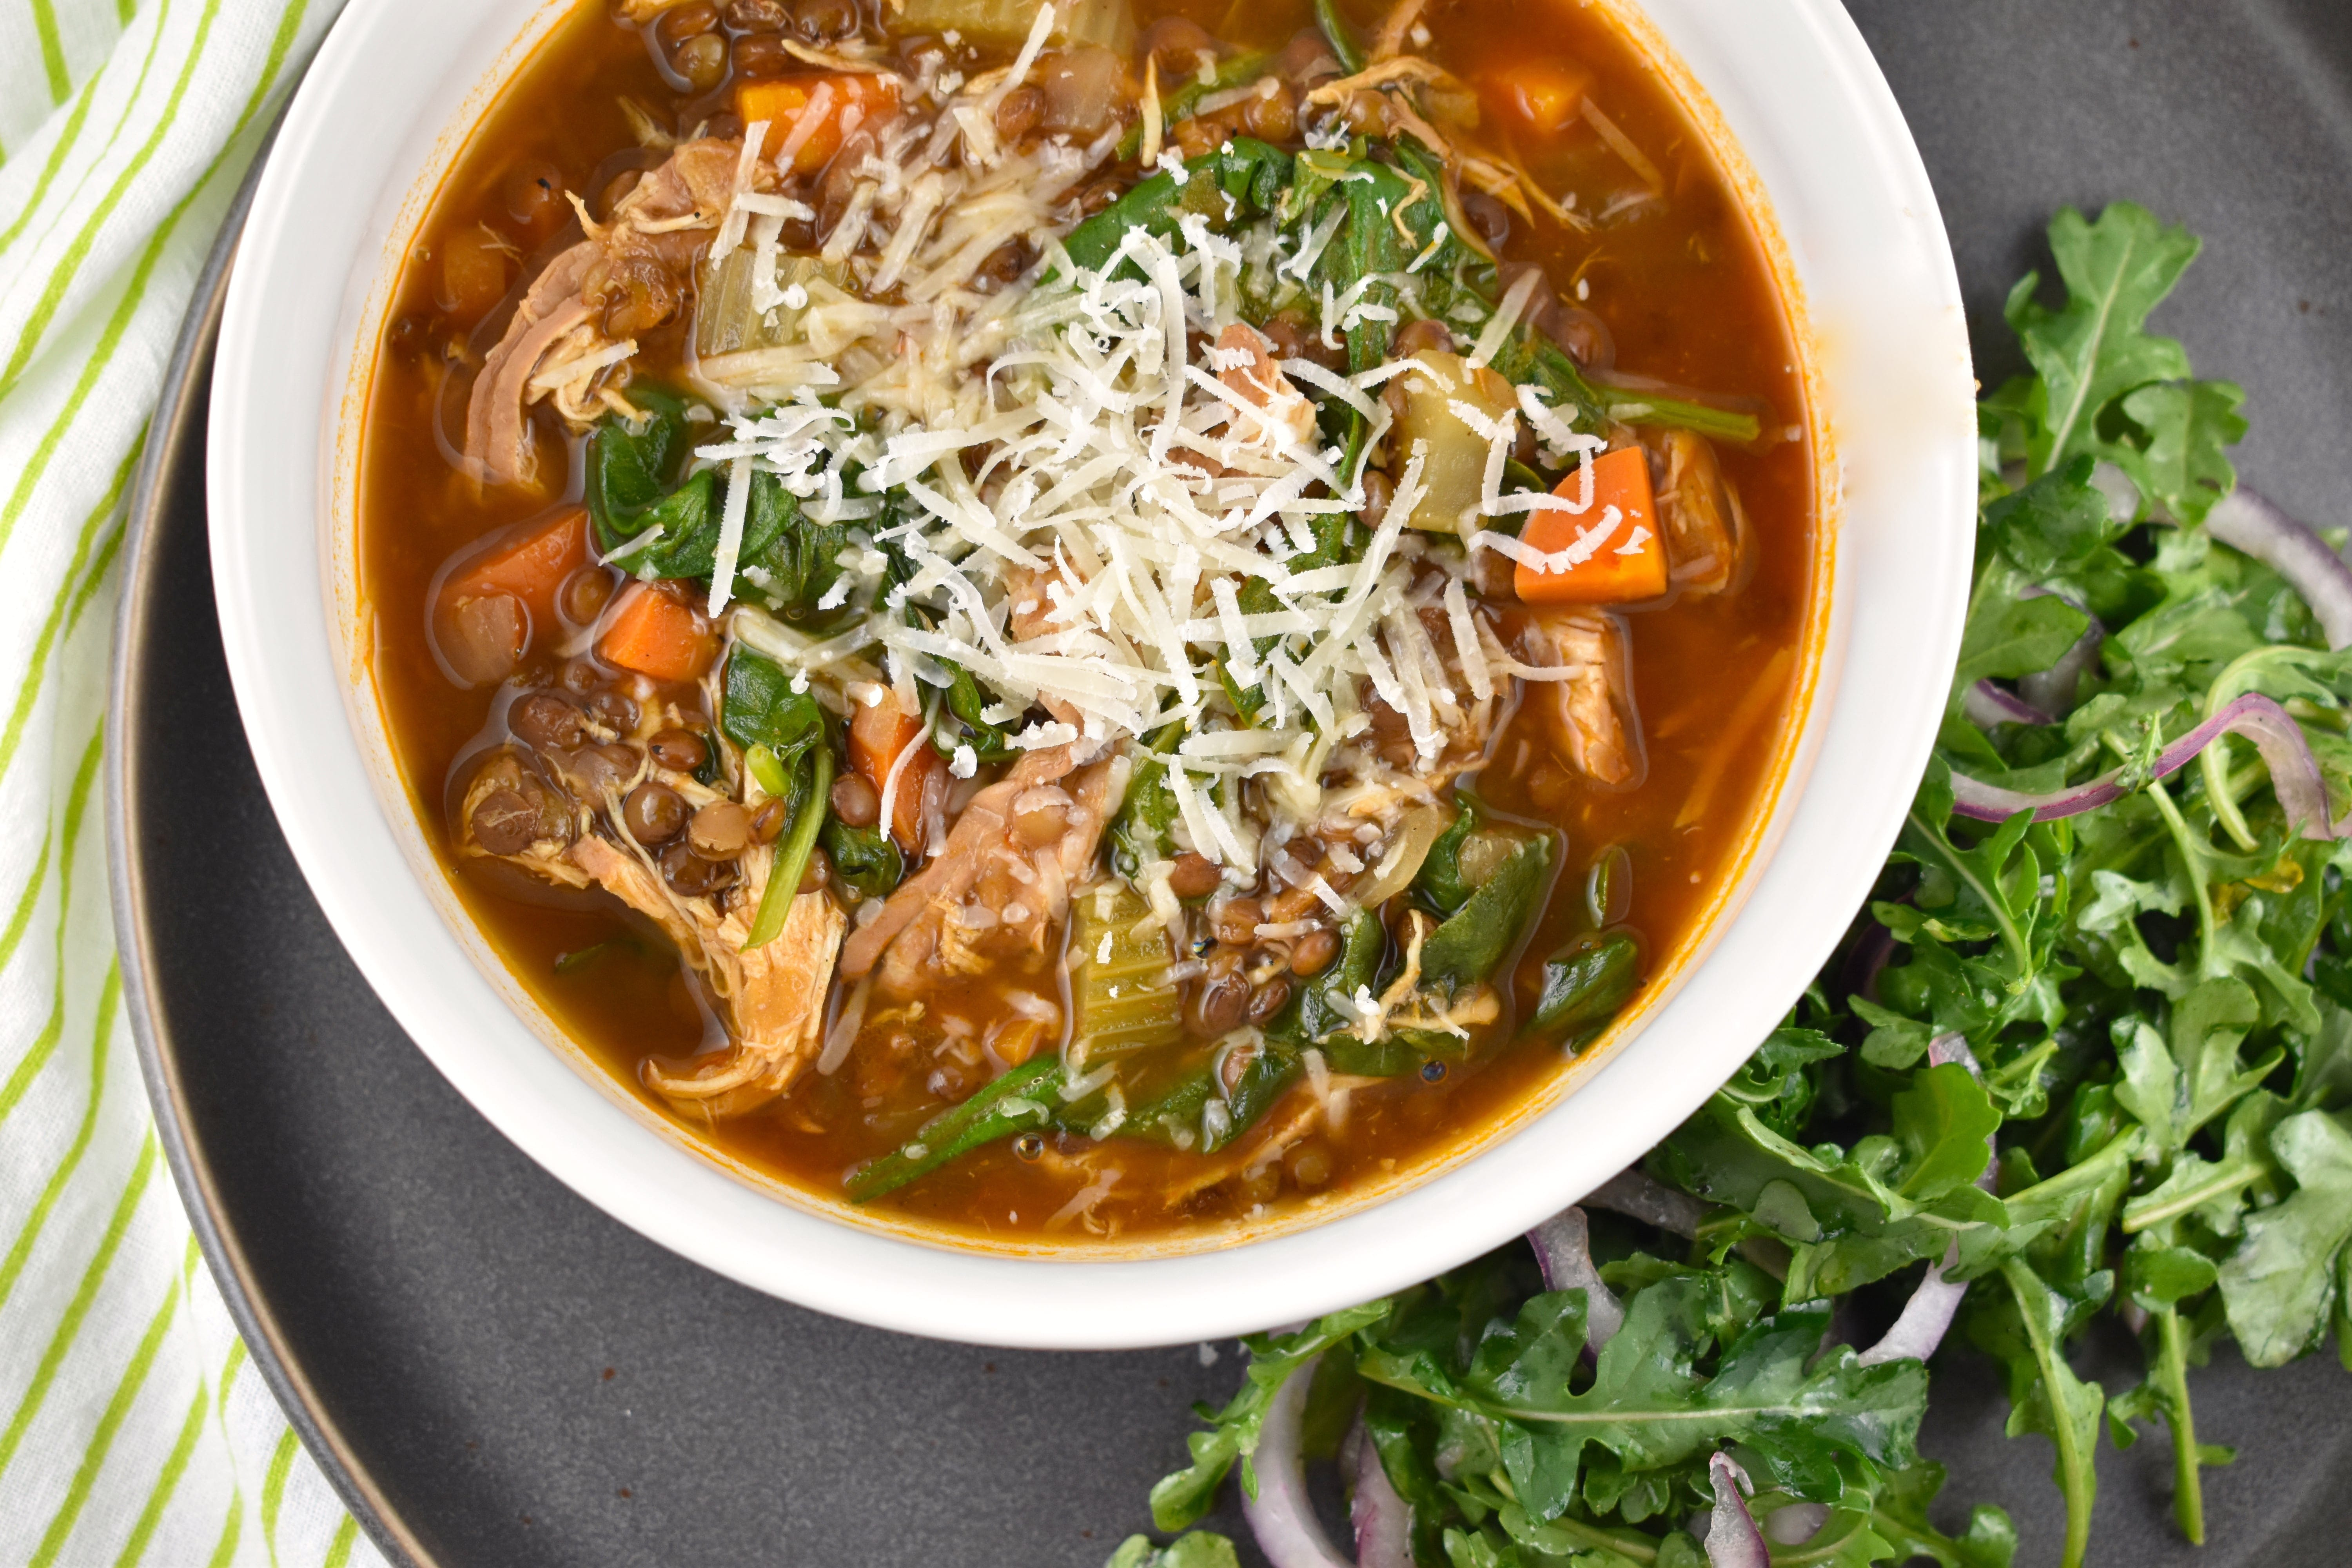 Chicken lentil and spinach soup recipe 1 point laaloosh chicken lentil and spinach soup recipe 1 point forumfinder Choice Image